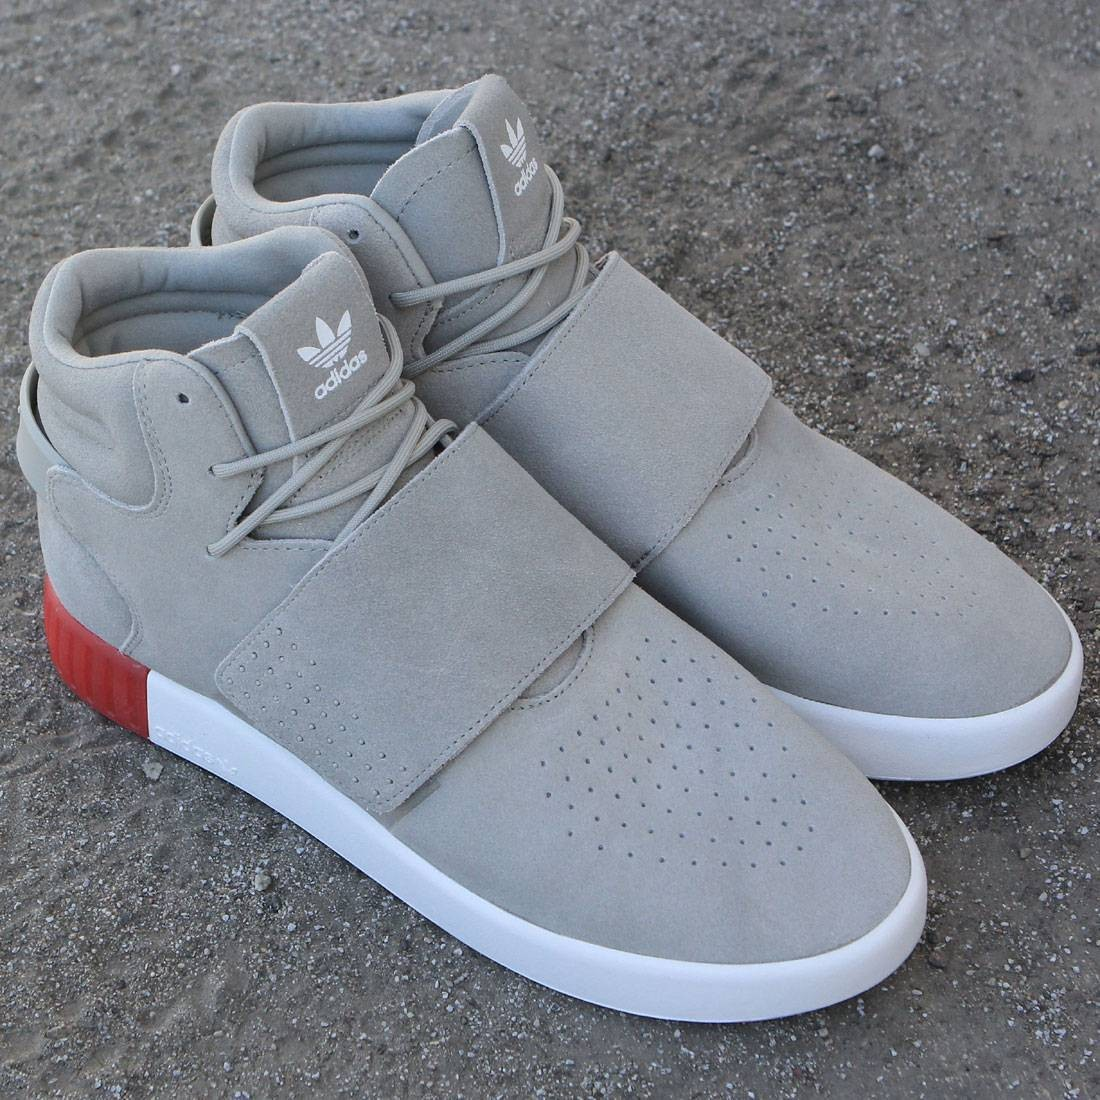 brand new 21de8 6eee0 Adidas Men Tubular Invader Strap (tan / sesame / vivid red)